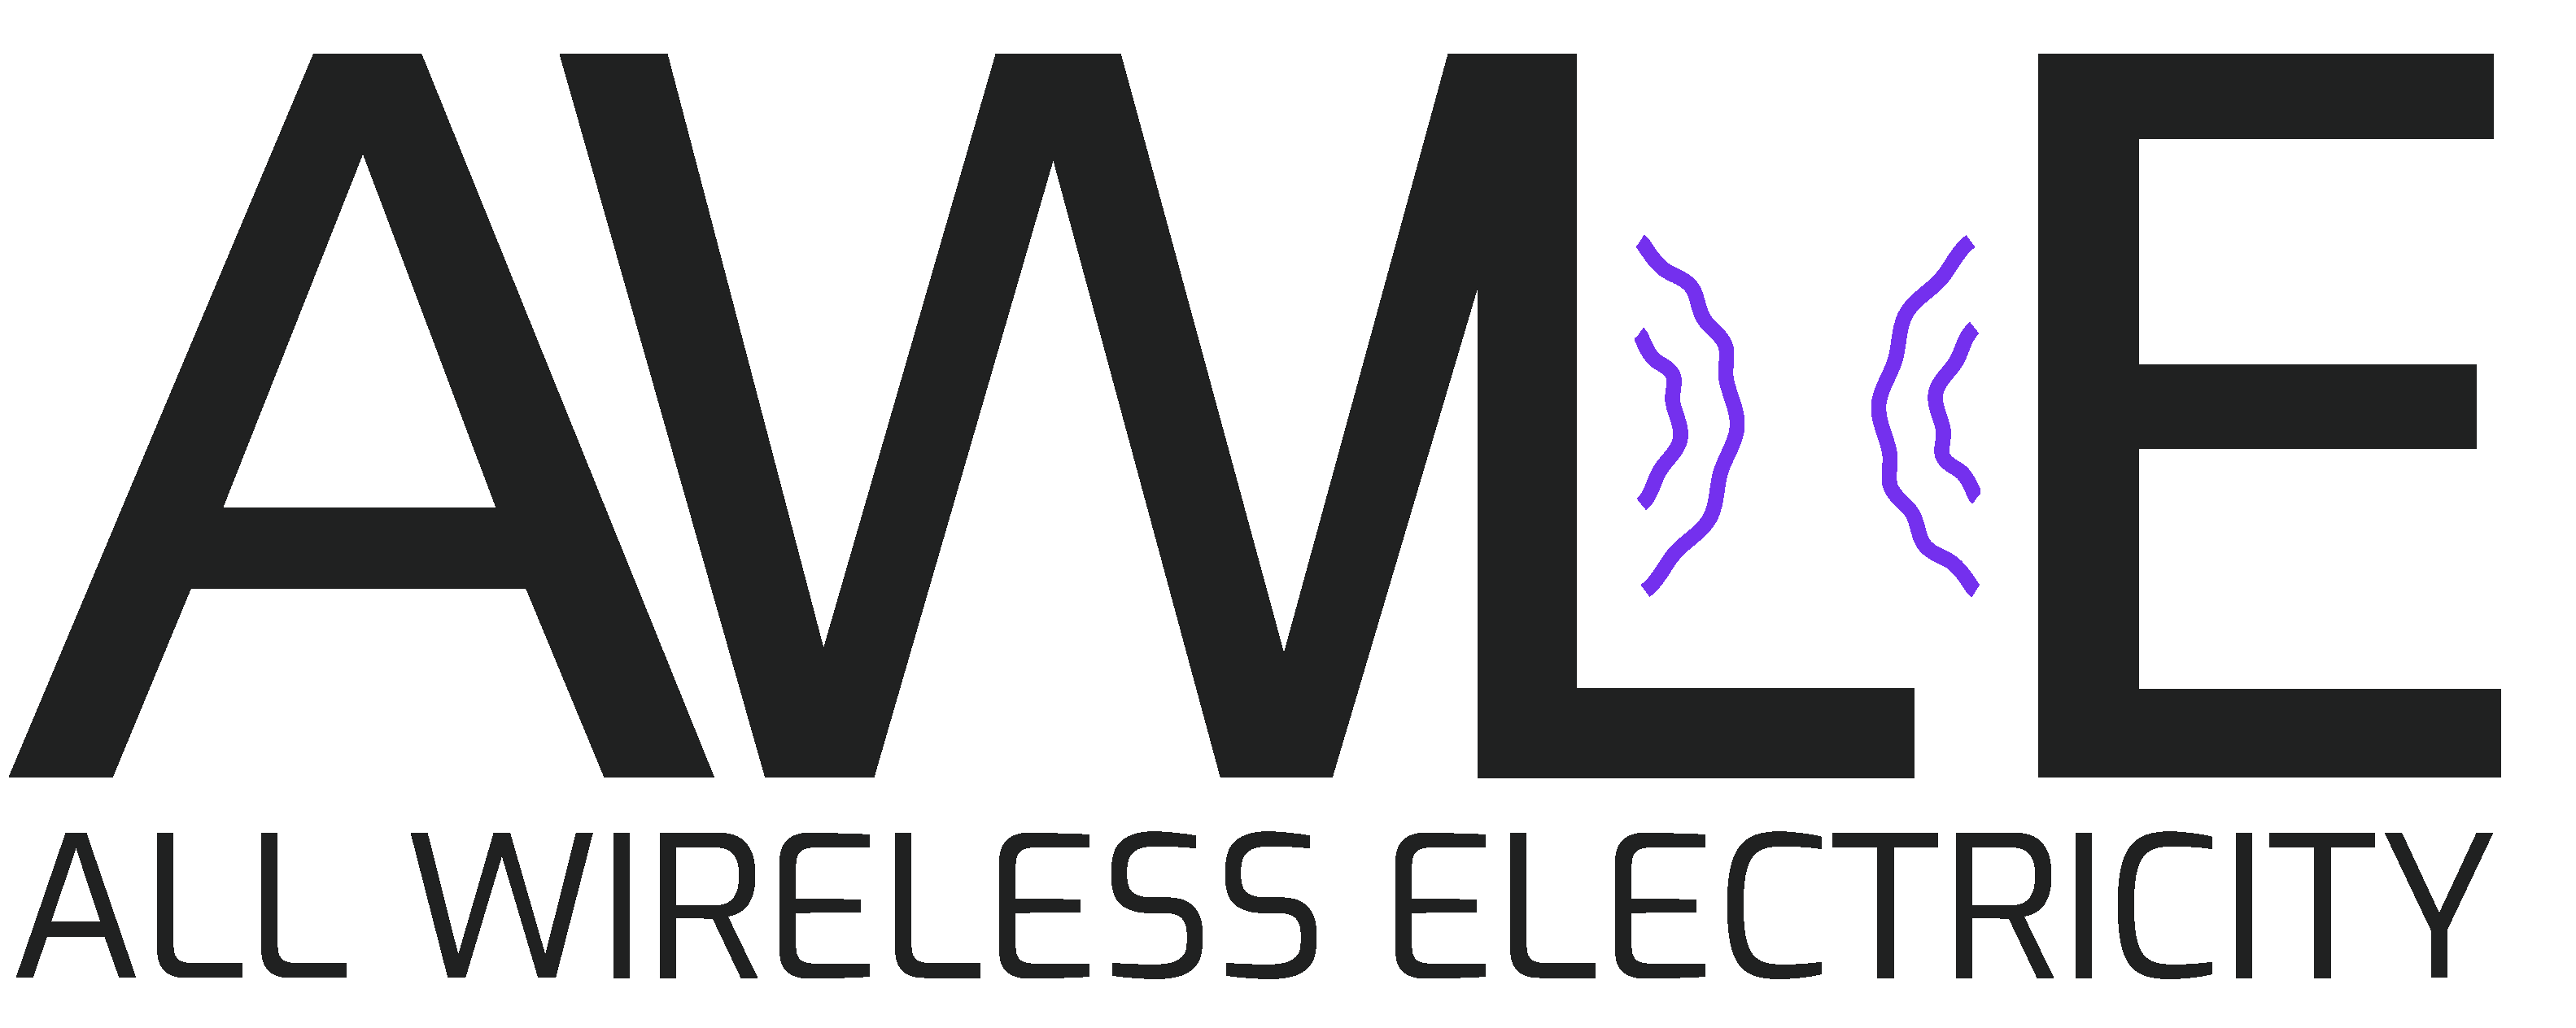 All Wireless Electricity